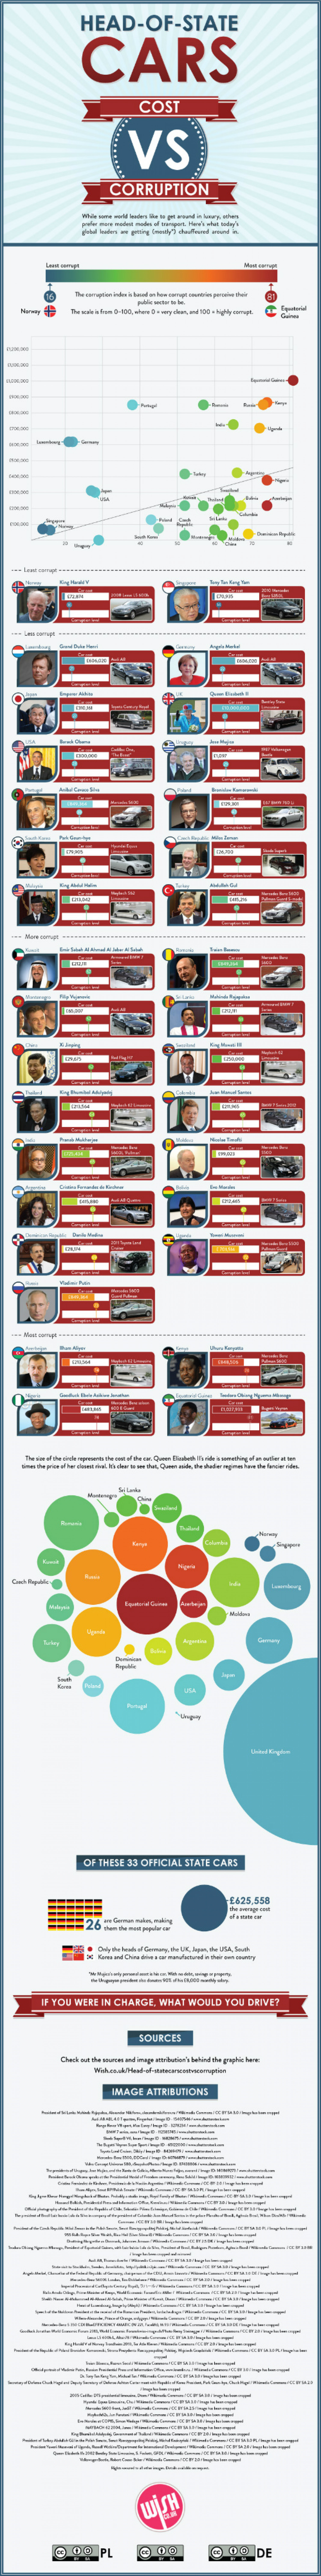 Head of State Cars: Cost Vs Corruption Infographic